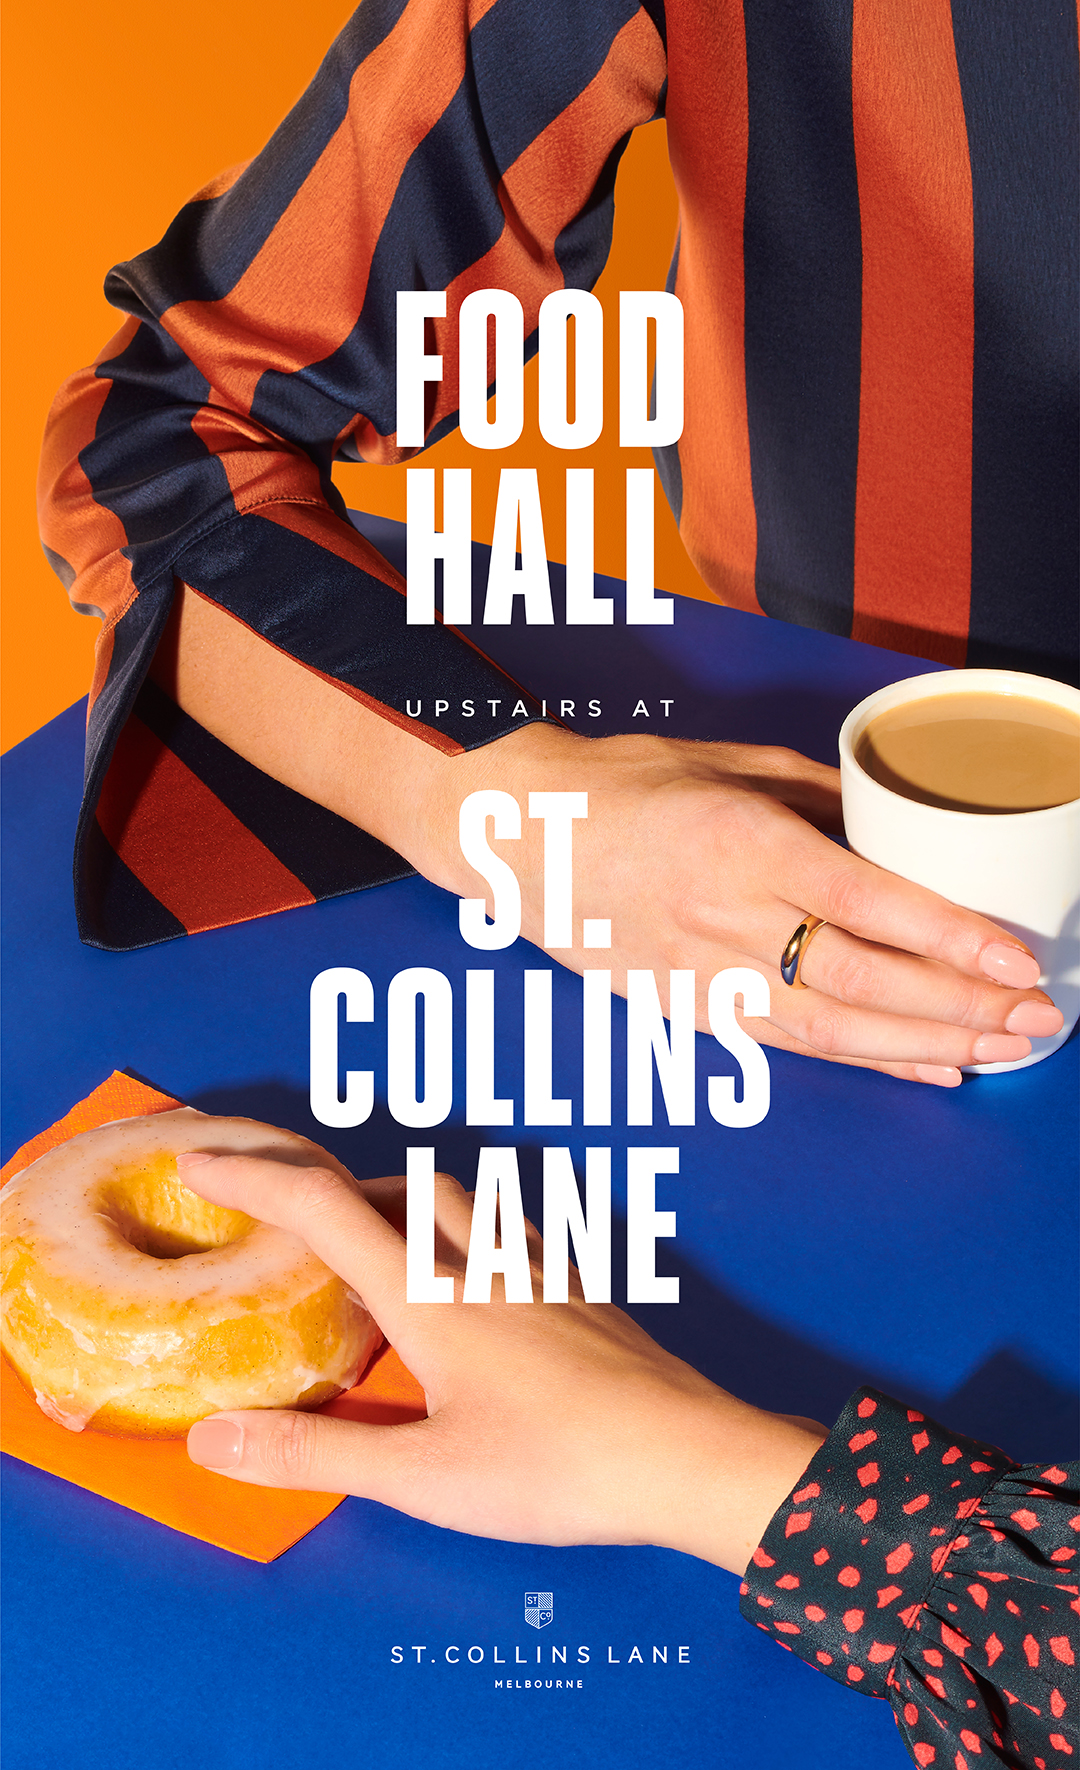 SCO3466 - St Collins Lane Food Hall - Digital Screens - 1770x1080 - 03 - FA.jpg